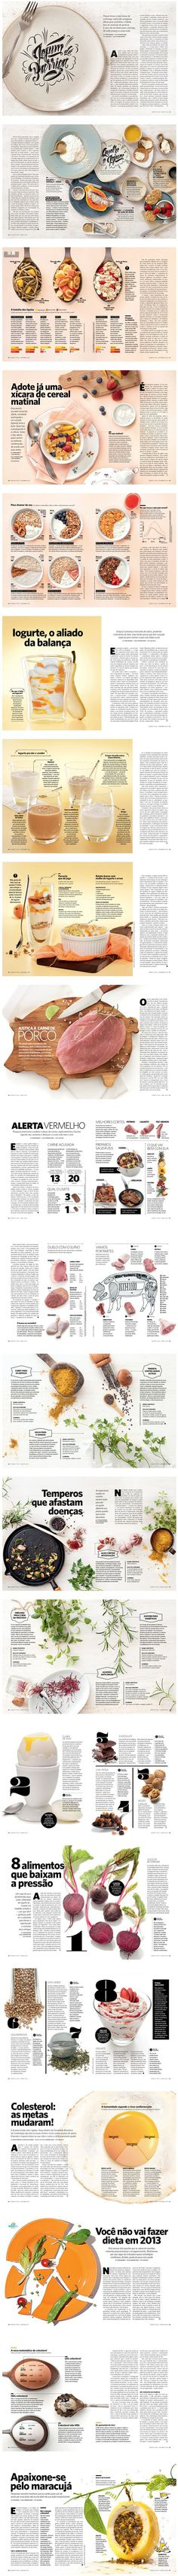 Saude Magazine is a Healthy Magazine from Brazil and has an amazing mix of food photography, grid layout, and typography for you to enjoy. Take a look and pick some ideas that you can use on your next editorial adventure. Editorial Design Layouts, Graphic Design Layouts, Poster Design, Menu Design, Book Design, Design Design, Print Design, Graphic Design Magazine, Magazine Layout Design